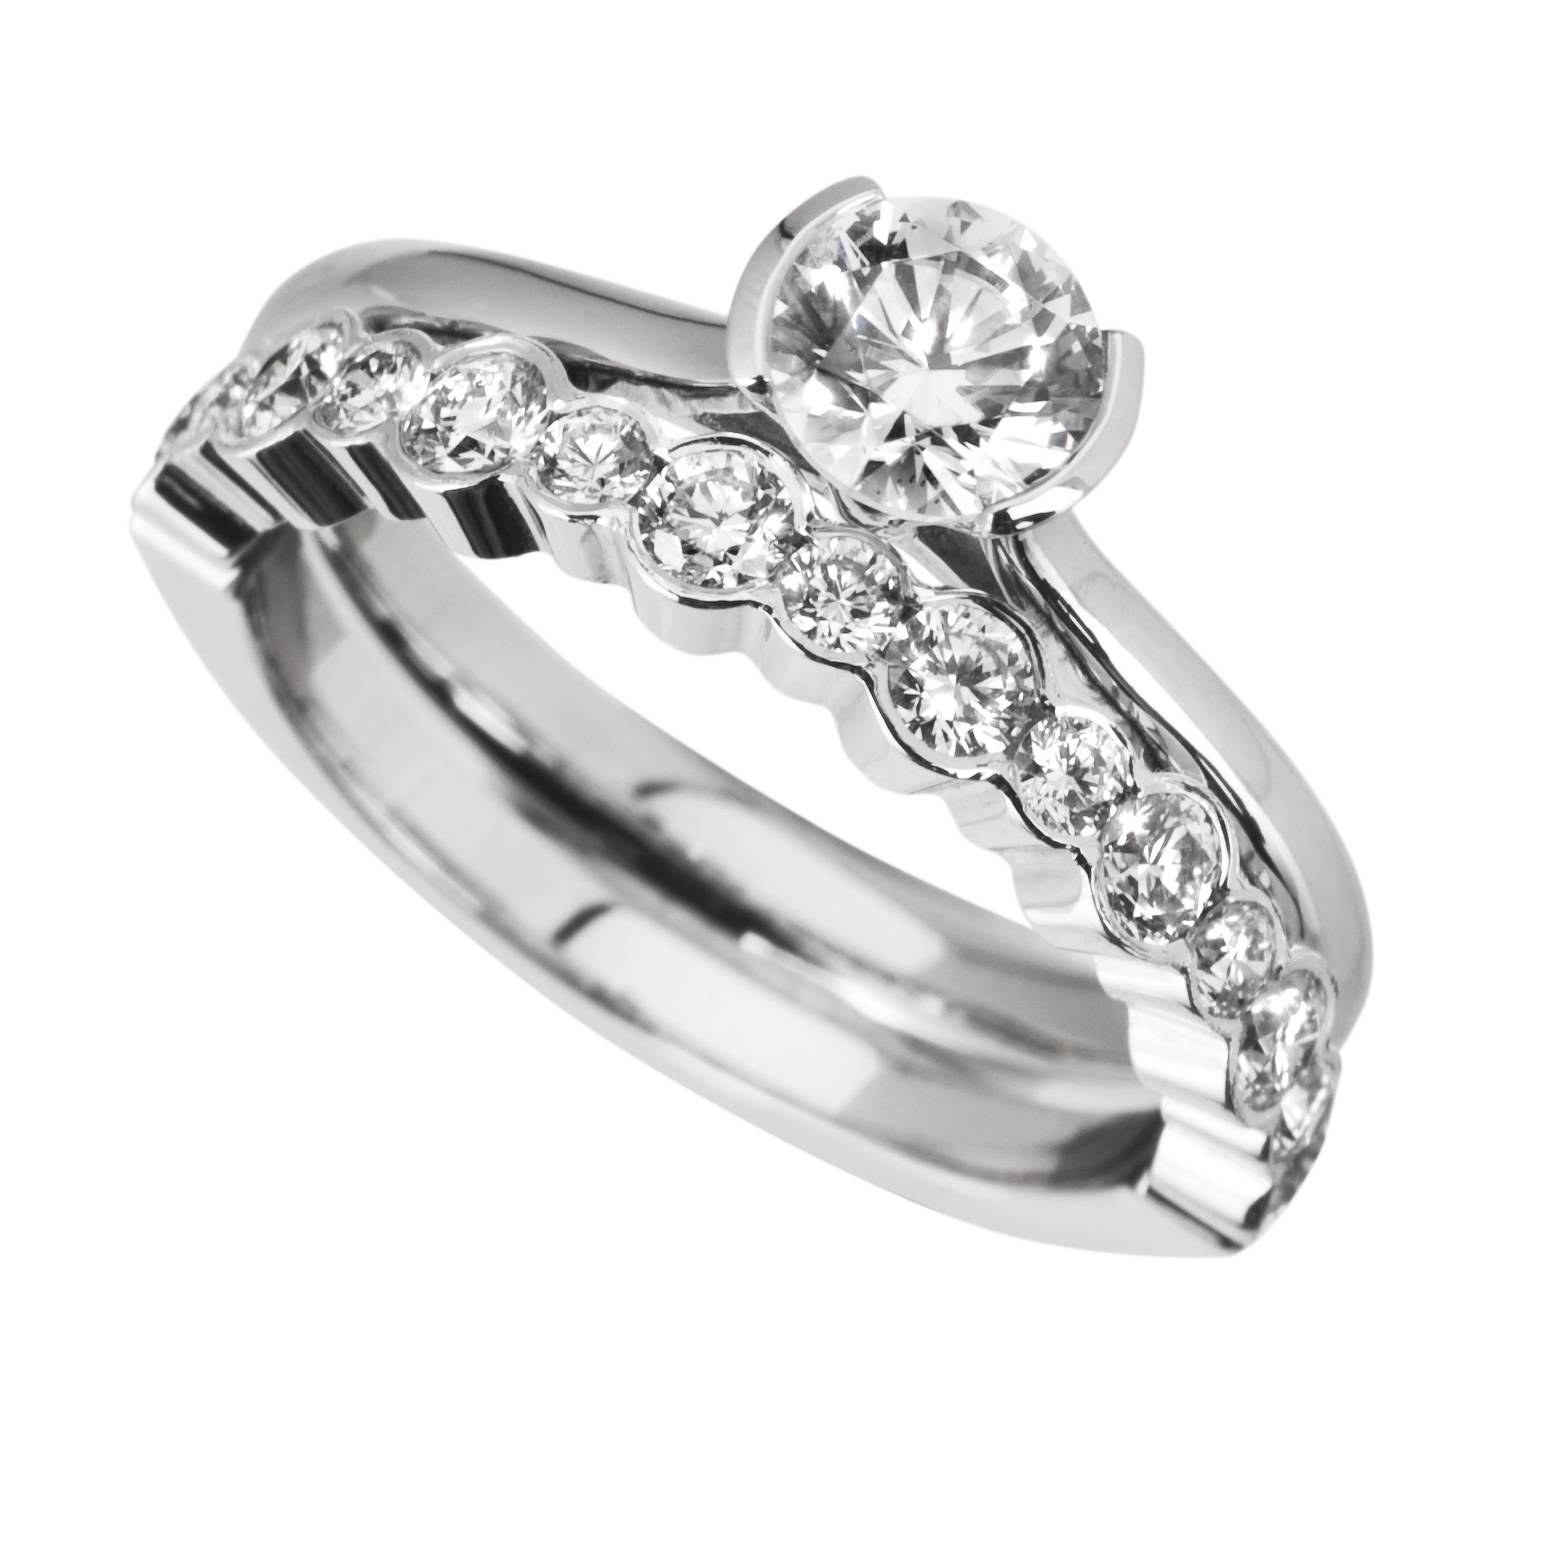 Wedding Rings : Engagement Ring Wedding Set His And Hers Wedding Within Most Current Interlocking Engagement Ring Wedding Bands (View 13 of 15)